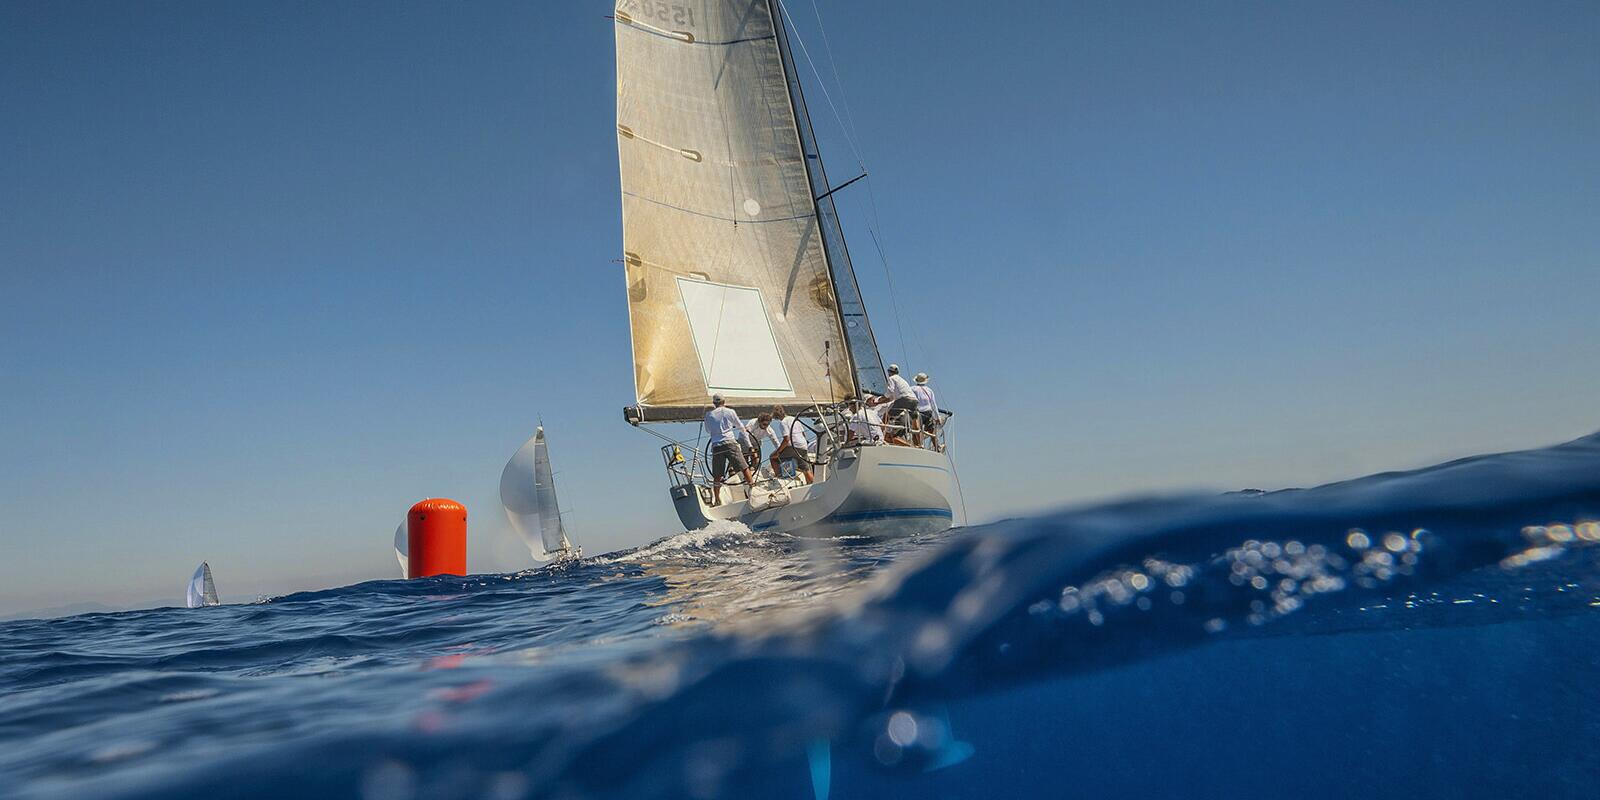 Sailing courses & regatta with professional skipper